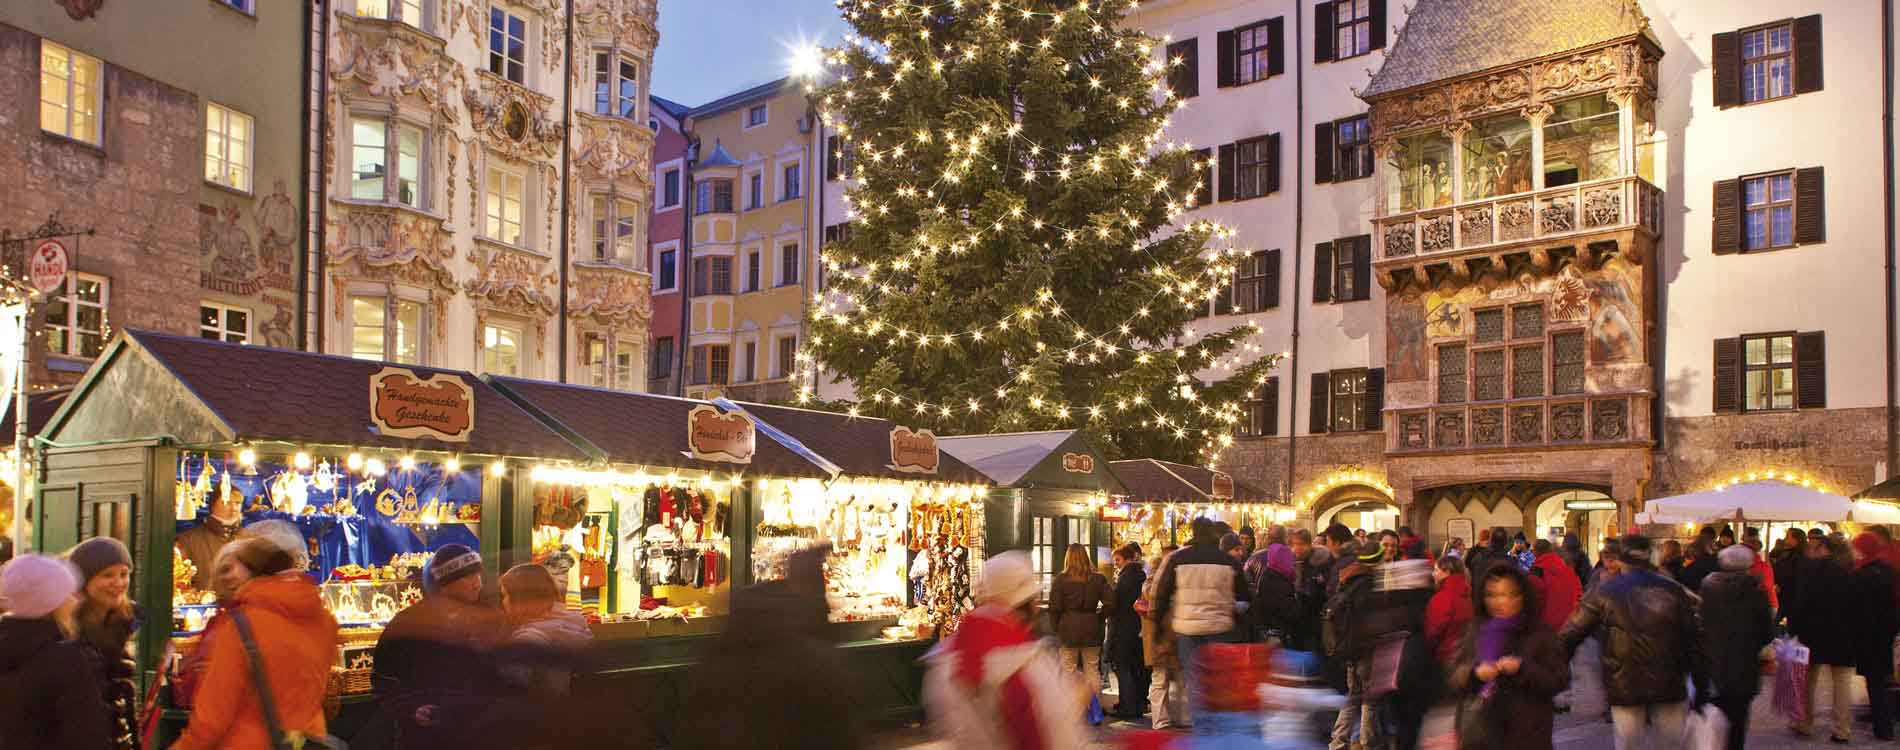 Innsbruck christmas market holiday at 5-star Relais & Châteaux SPA-HOTEL Jagdhof in Stubai Valley, Tyrol, Austria - niche destinations